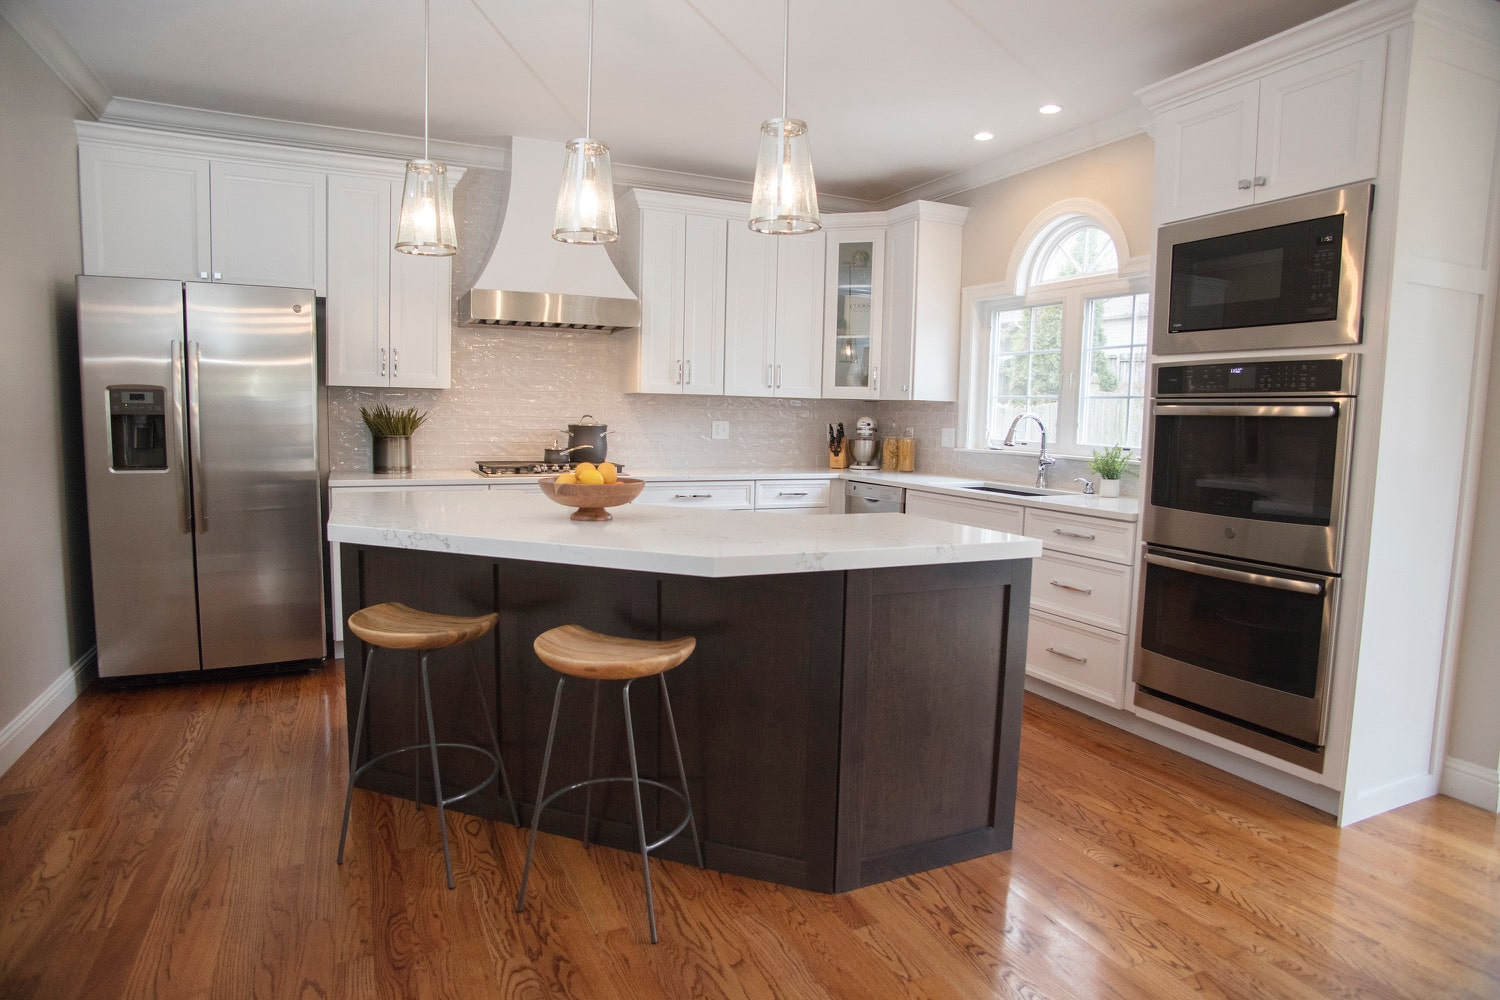 Kitchen Cabinet Refacing St Louis | Cabinet Coverup Re ...